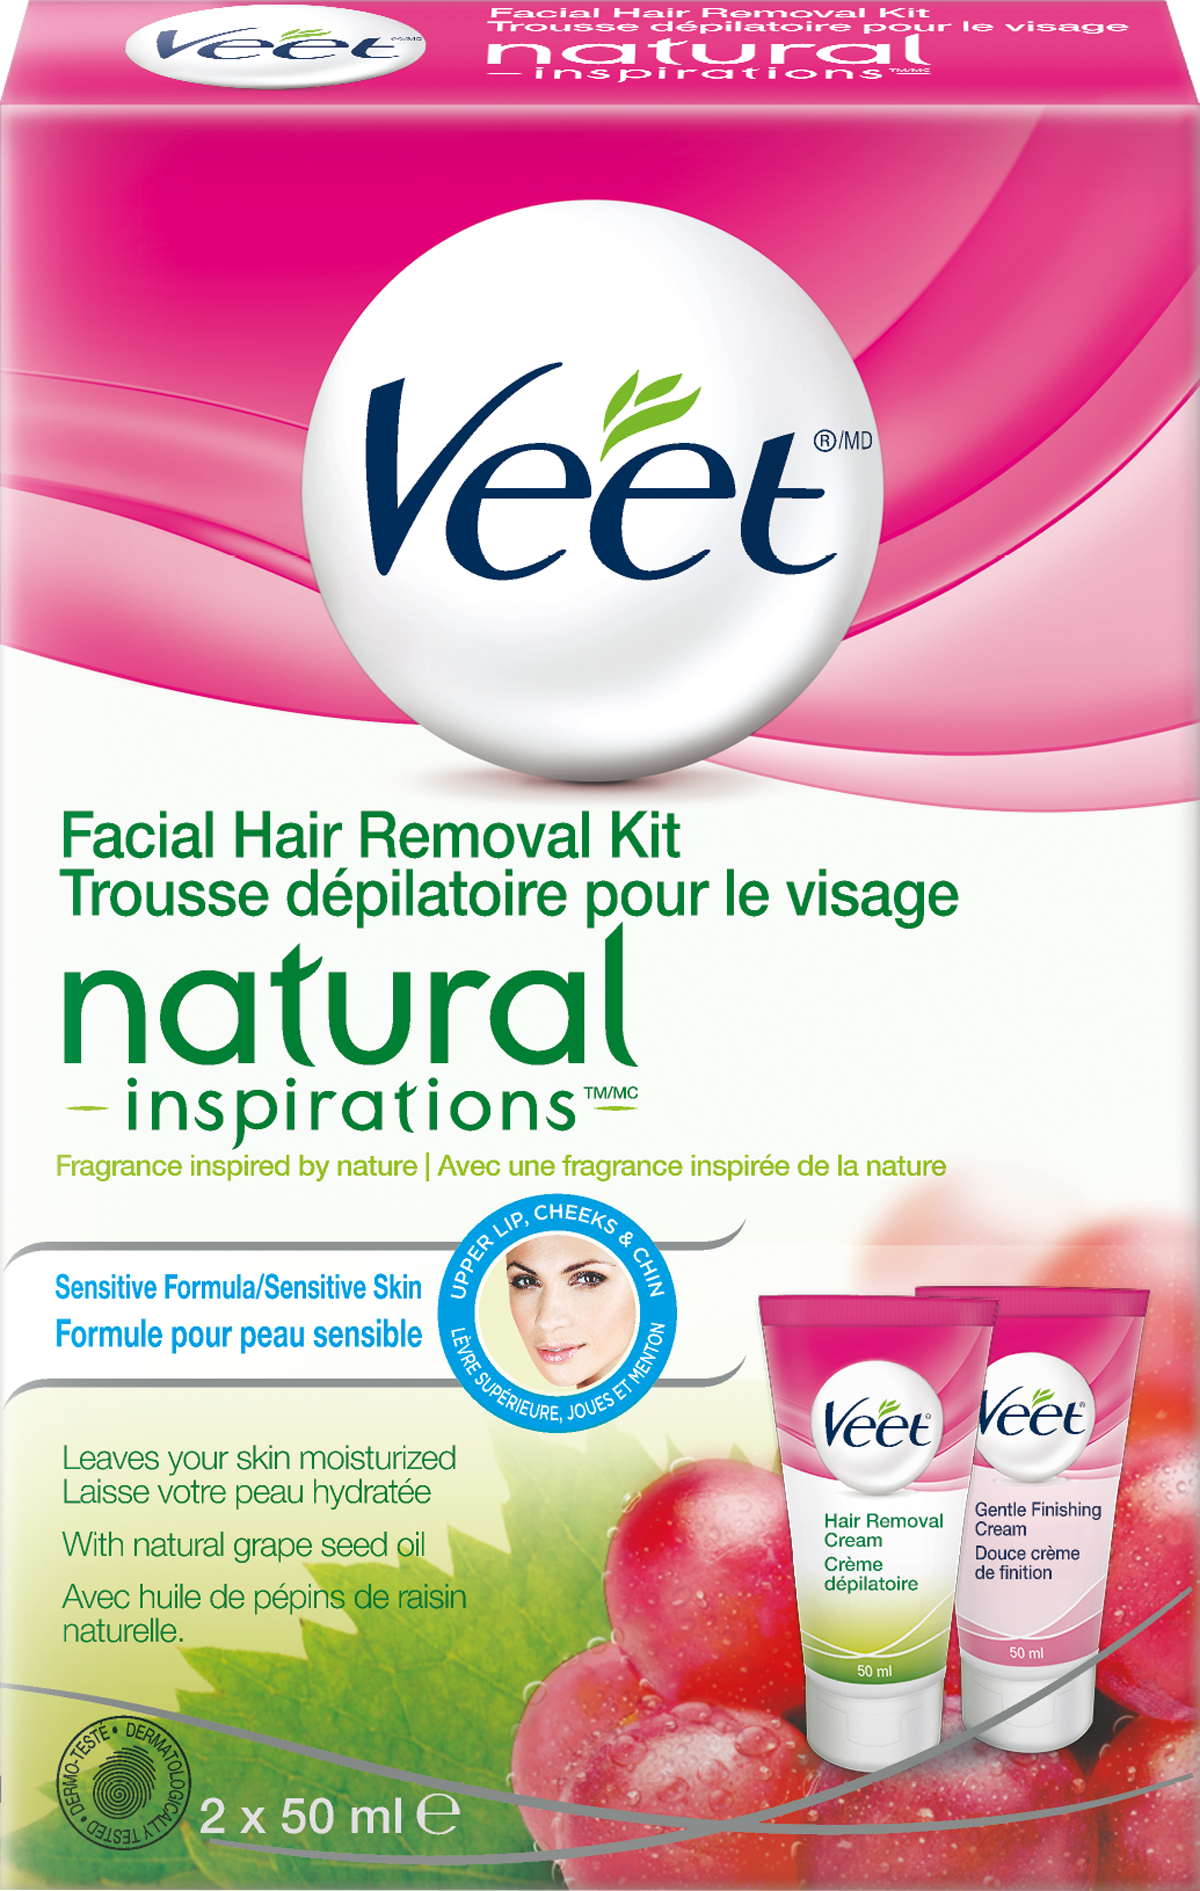 Veet Natural Inspirations Facial Hair Removal Kit Hair Removal Cream Canada